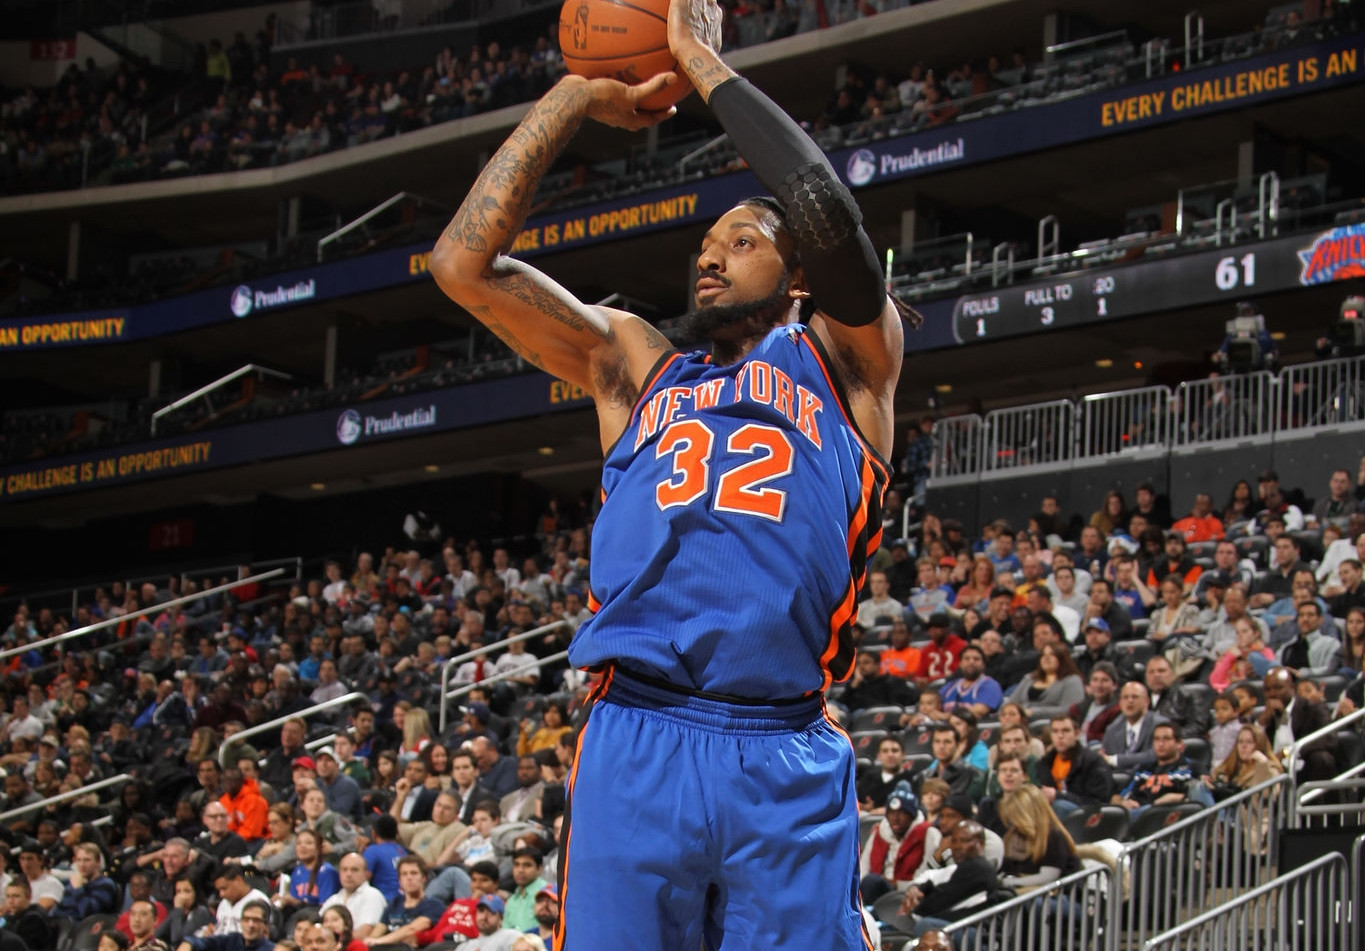 Renaldo Balkman, New York Knicks